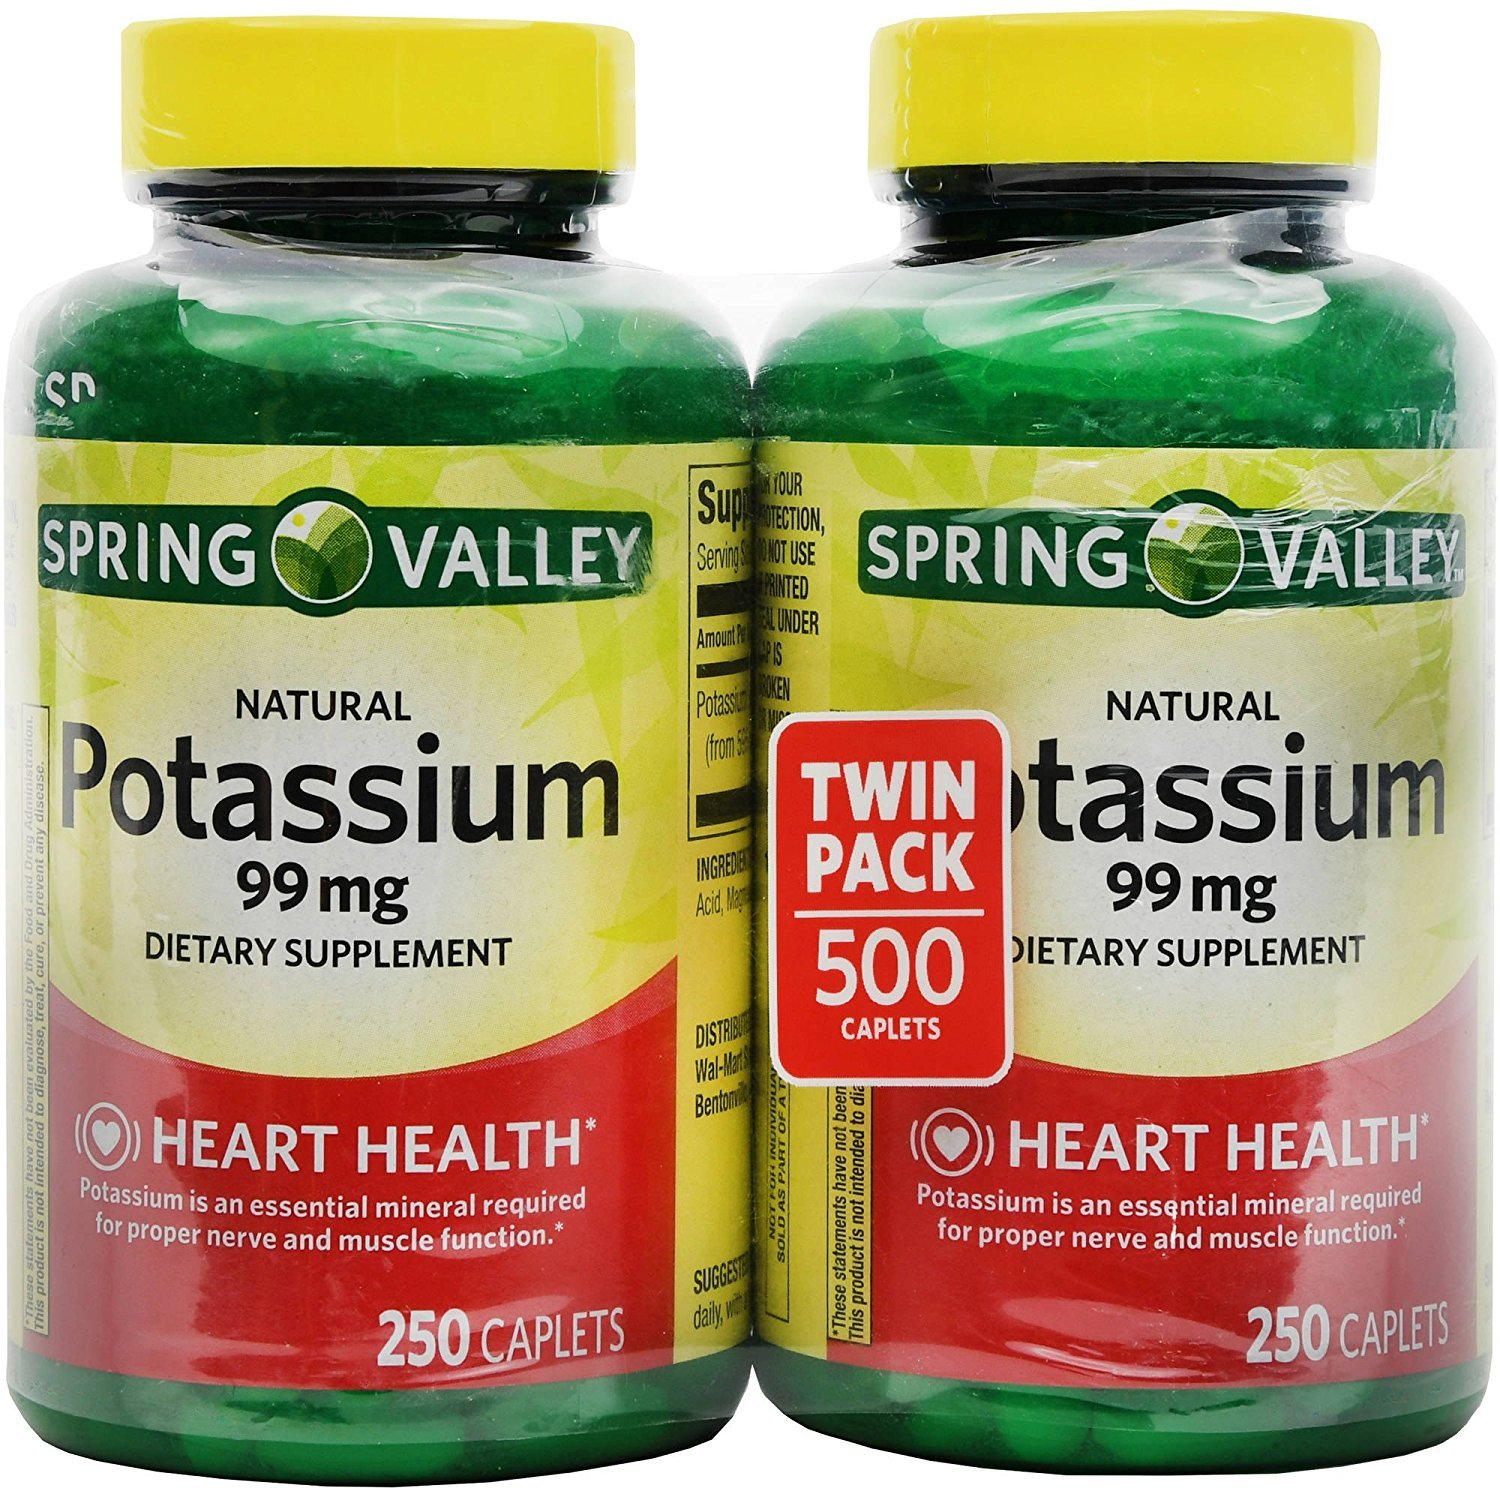 Spring Valley Potassium 99 mg from Potassium Gluconate 595 mg (2 Bottles of 250 Caplets